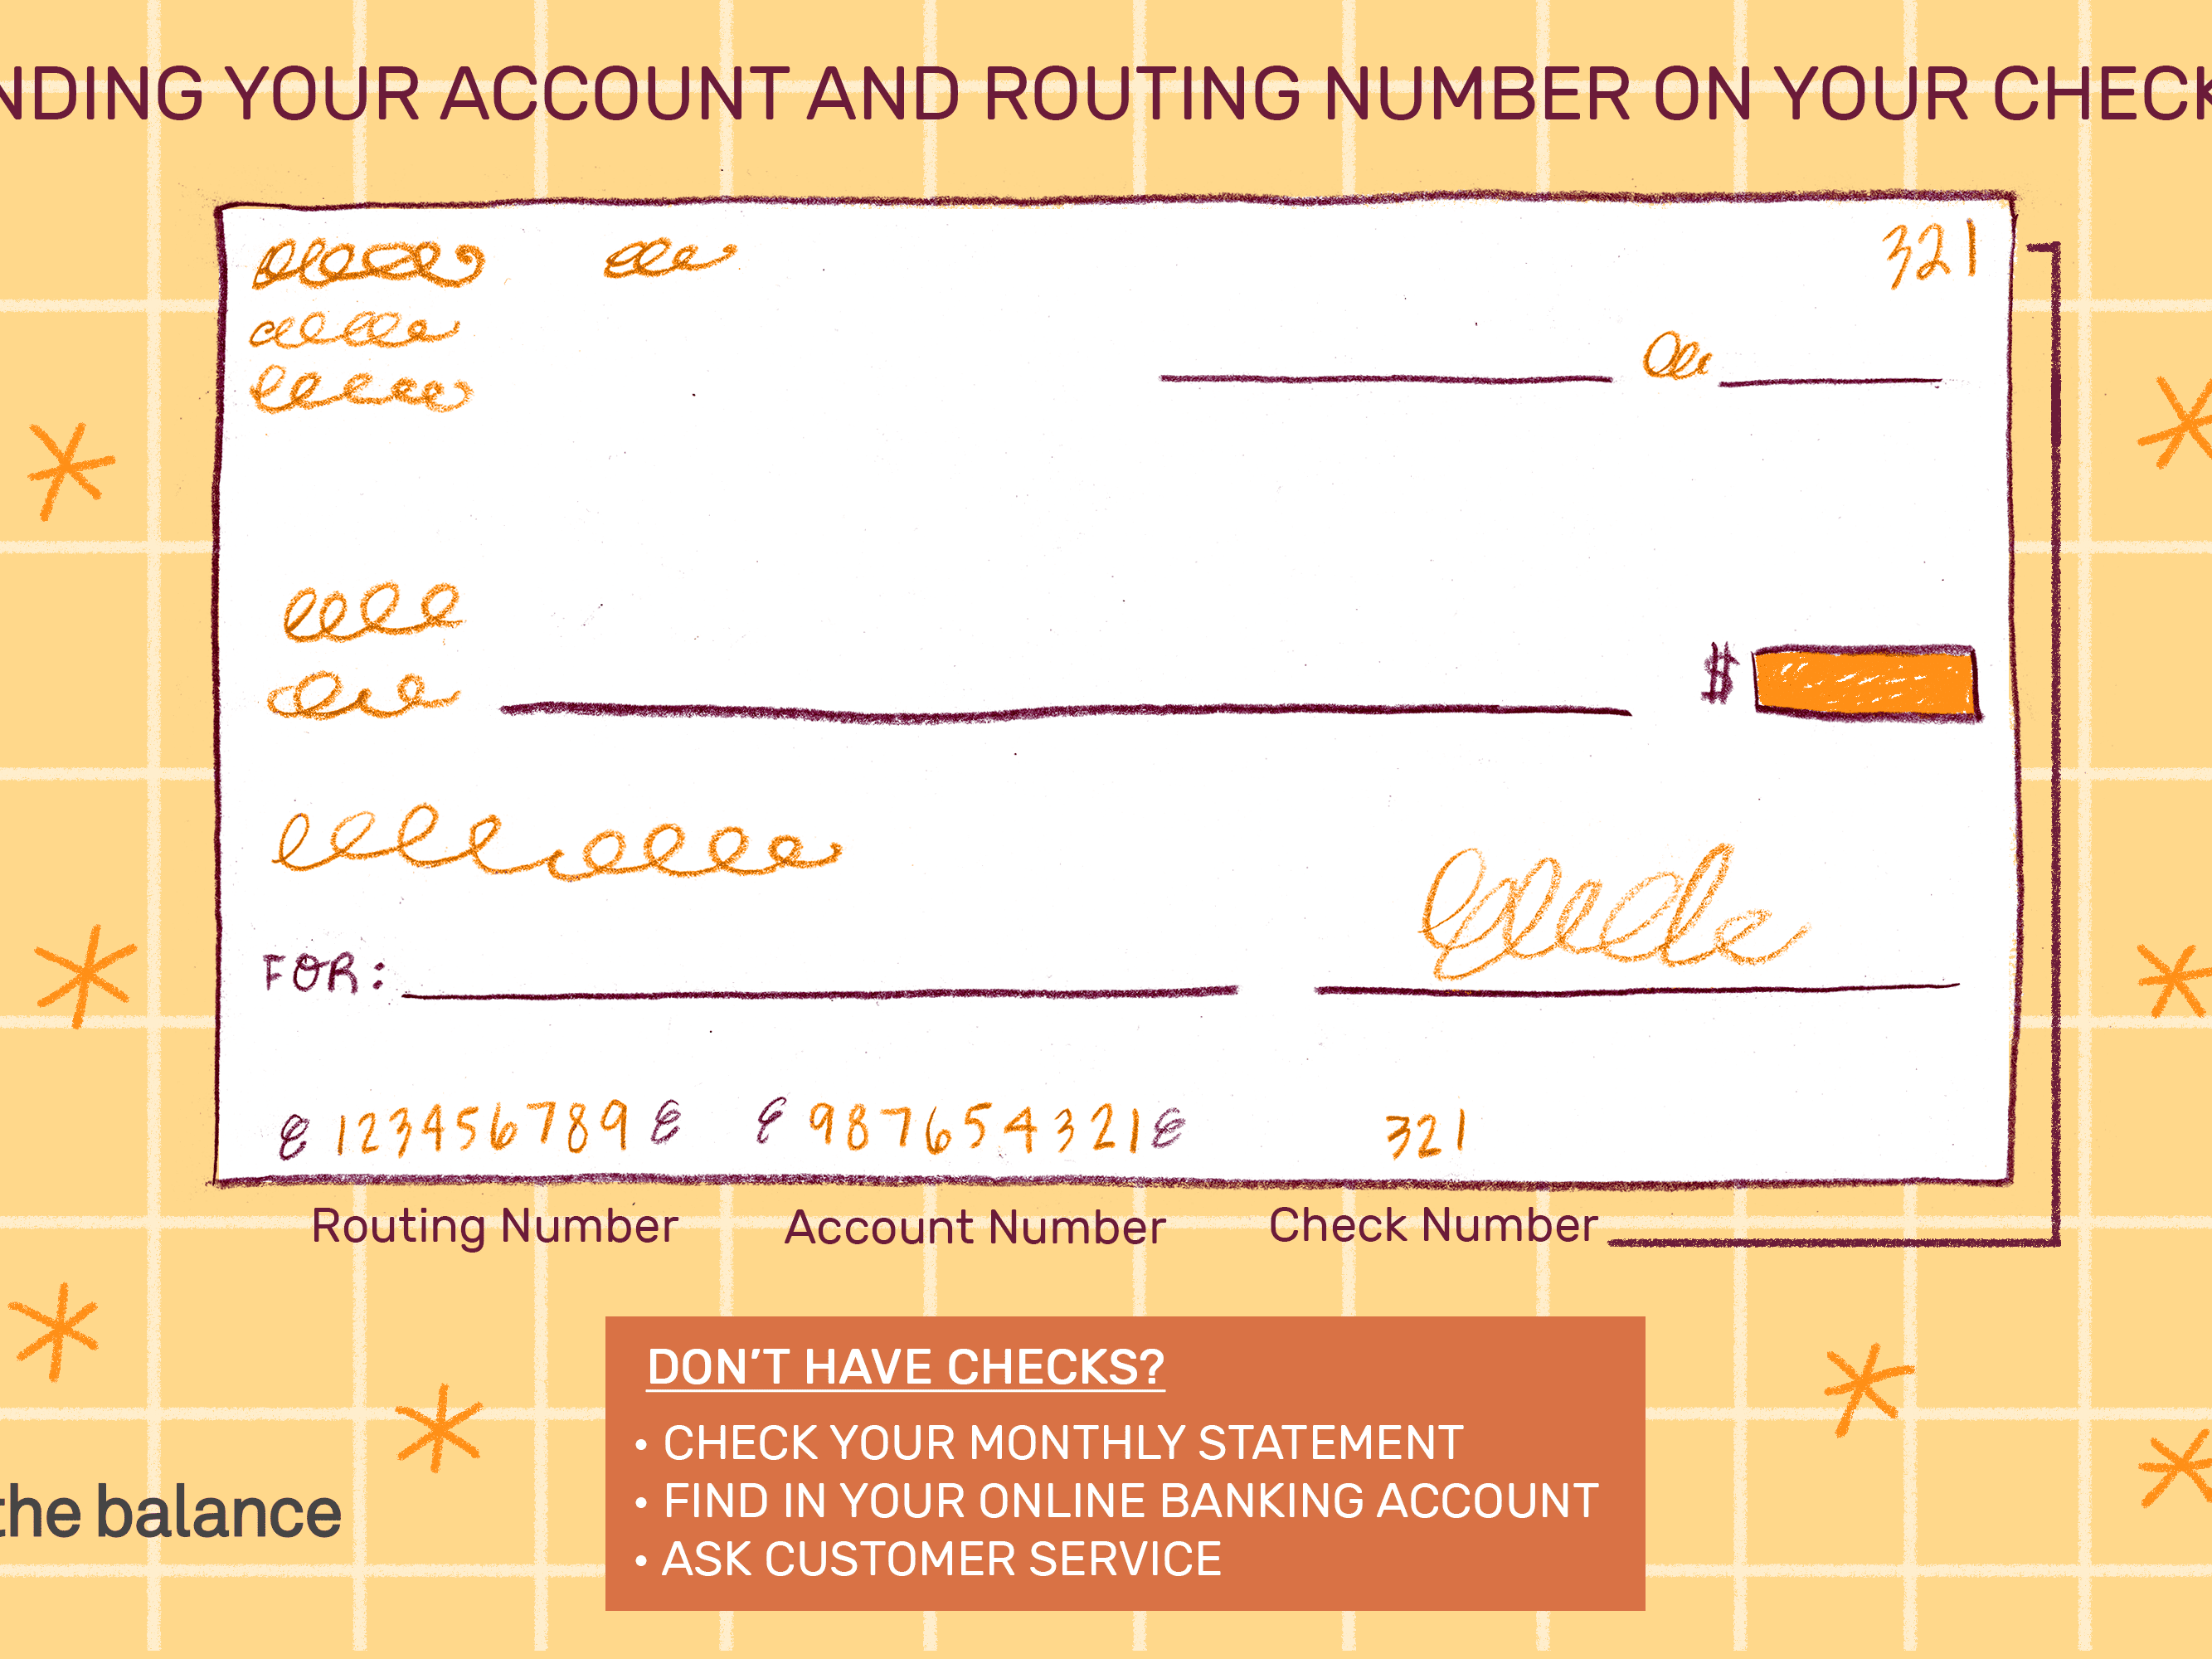 Find Your Account Number On A Check